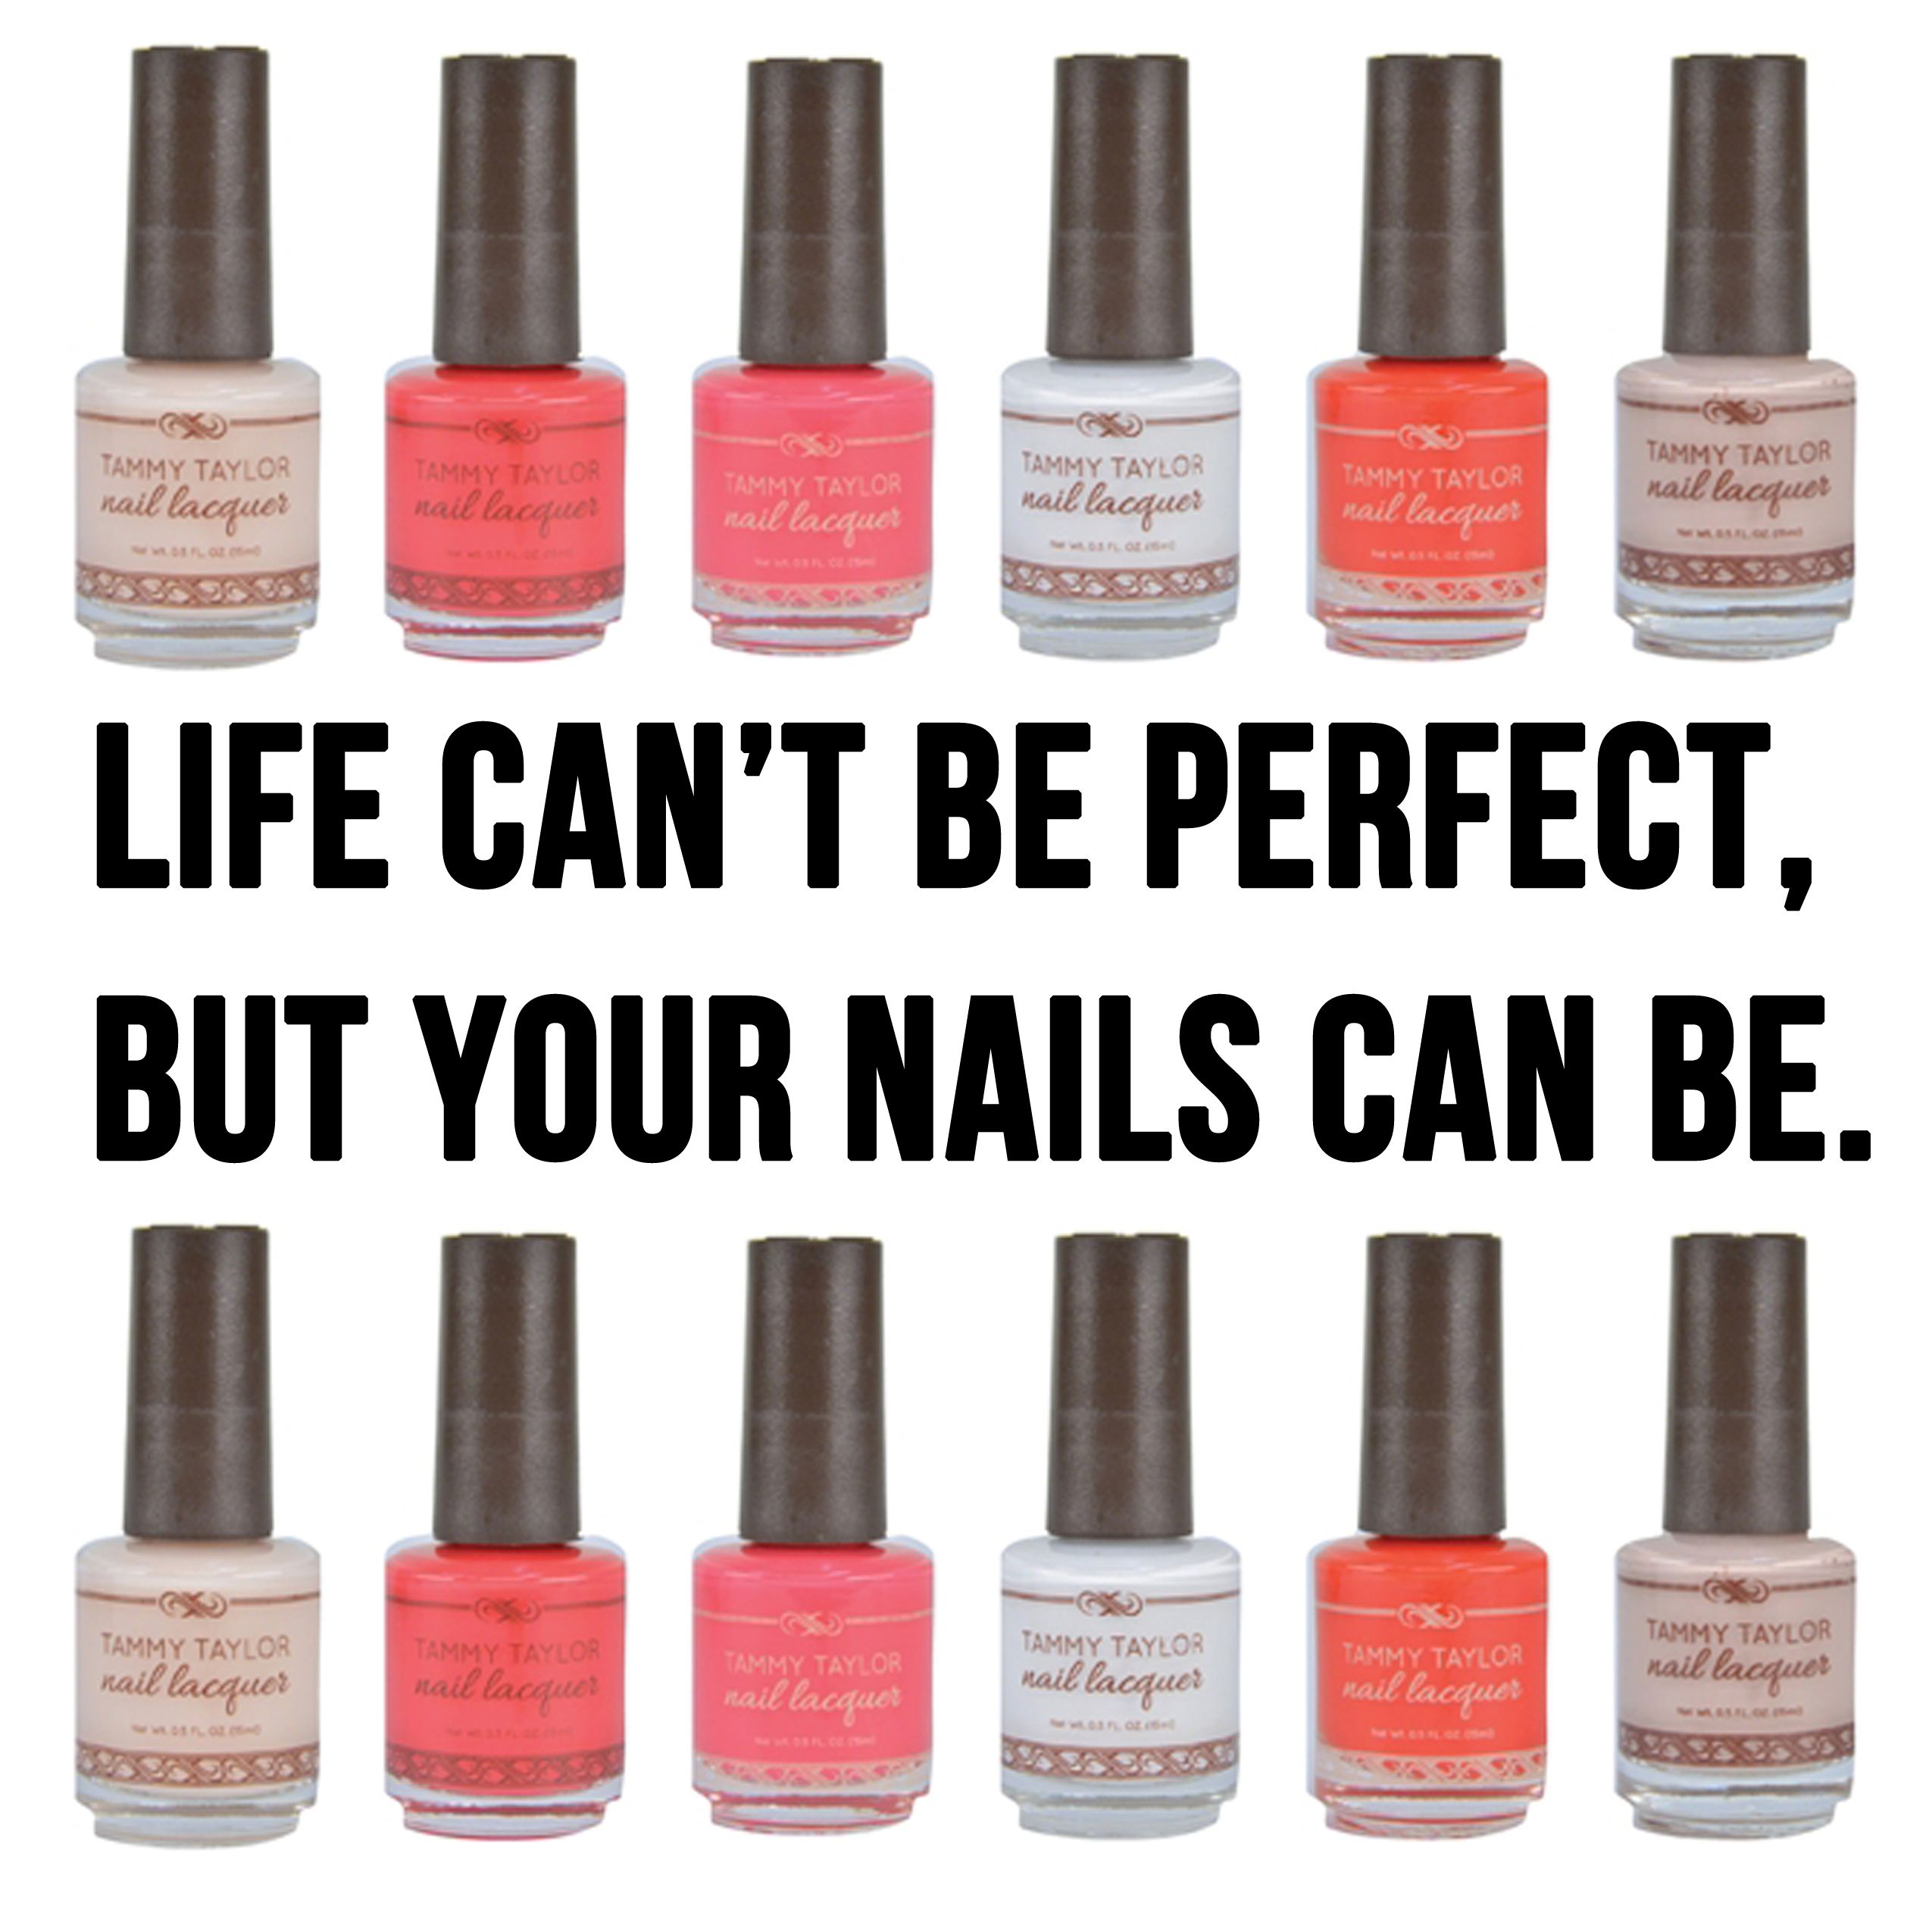 Nail Art Quote: Life Can't Be Perfect, But Your Nails Can Be. Nail Quote